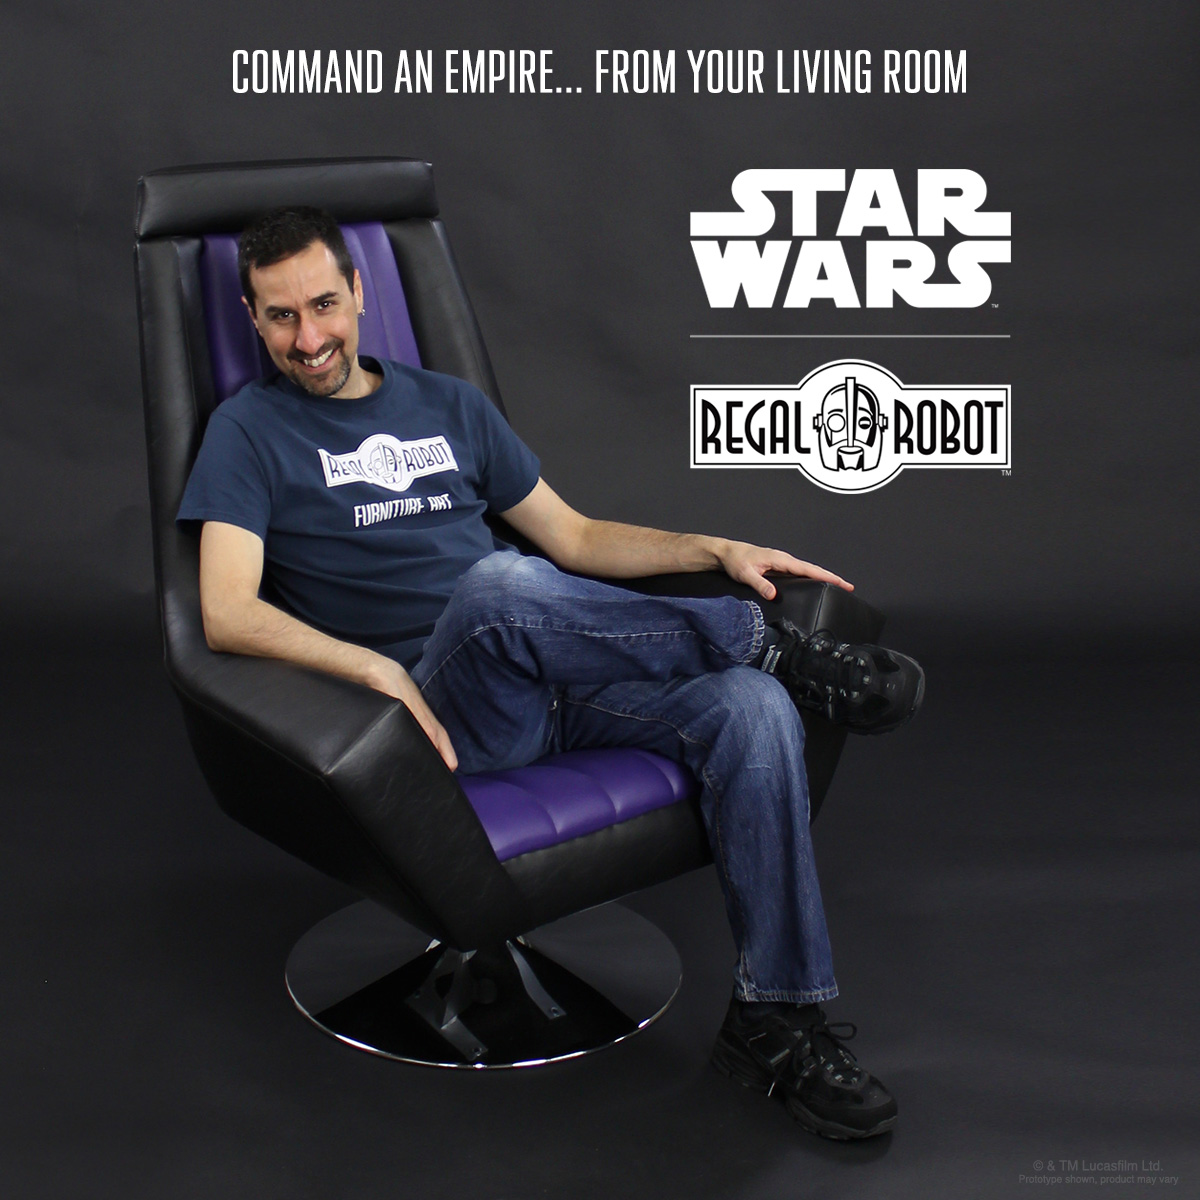 Imperial Star Wars furniture by Regal Robot